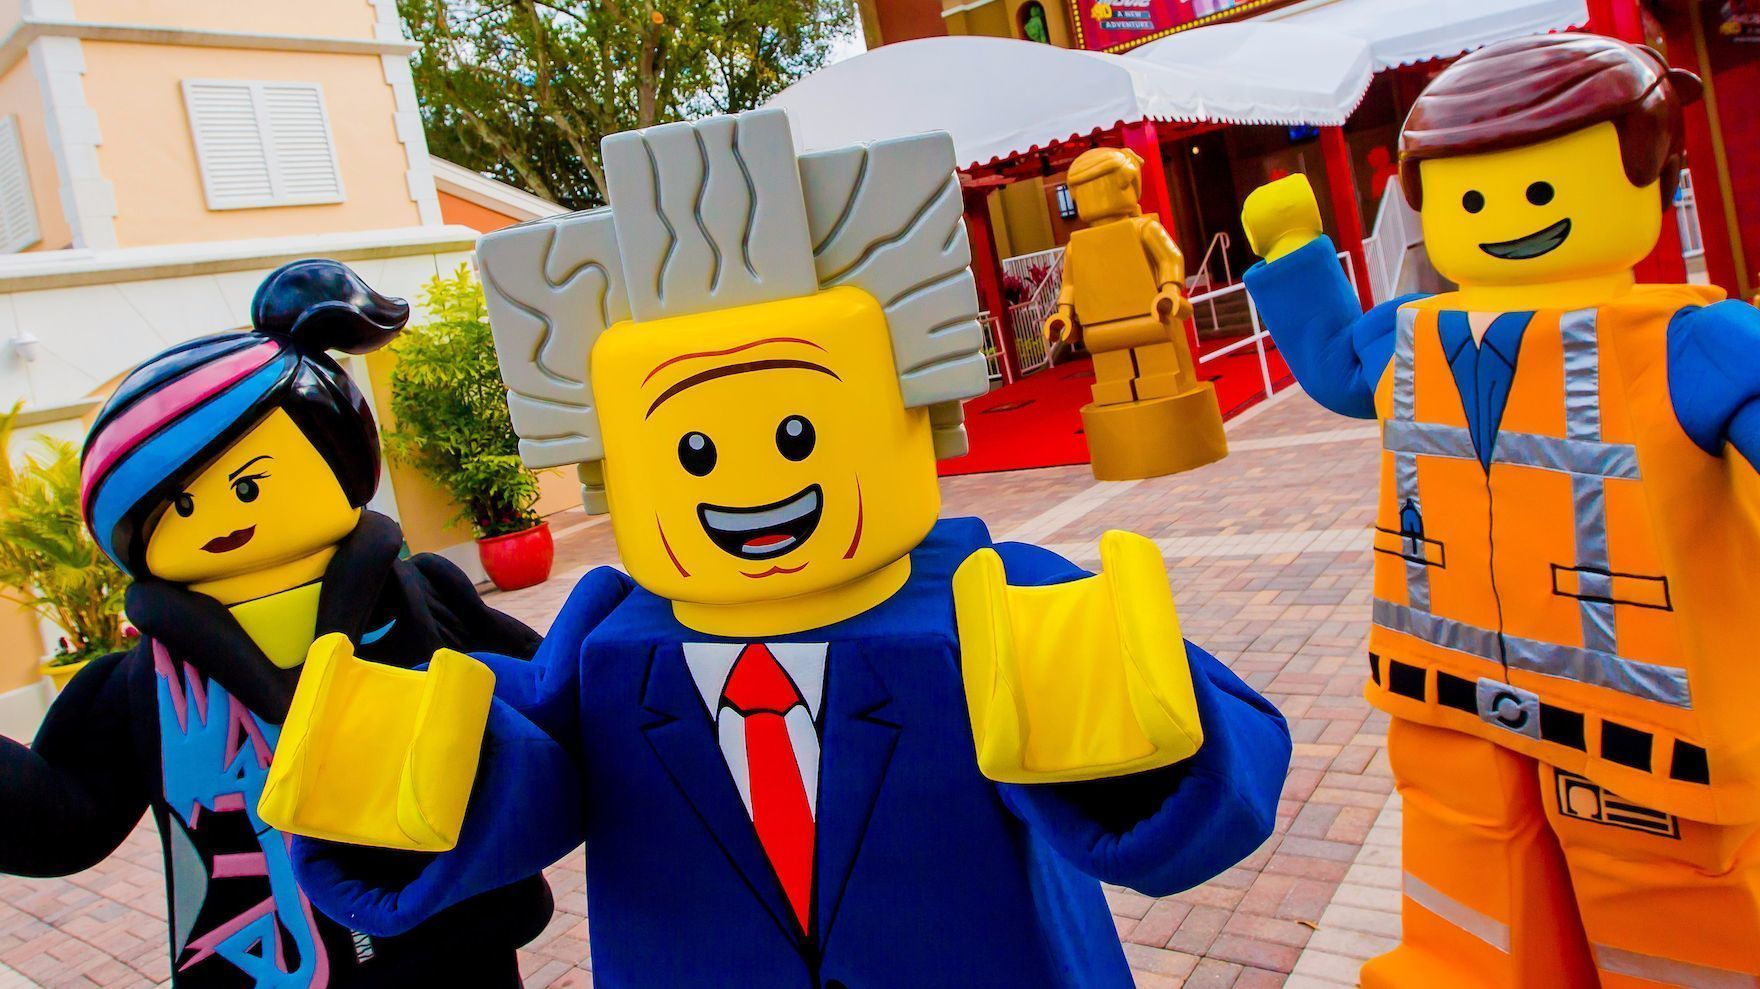 Legoland: $99 sale on Awesomer Annual Pass coming up ...